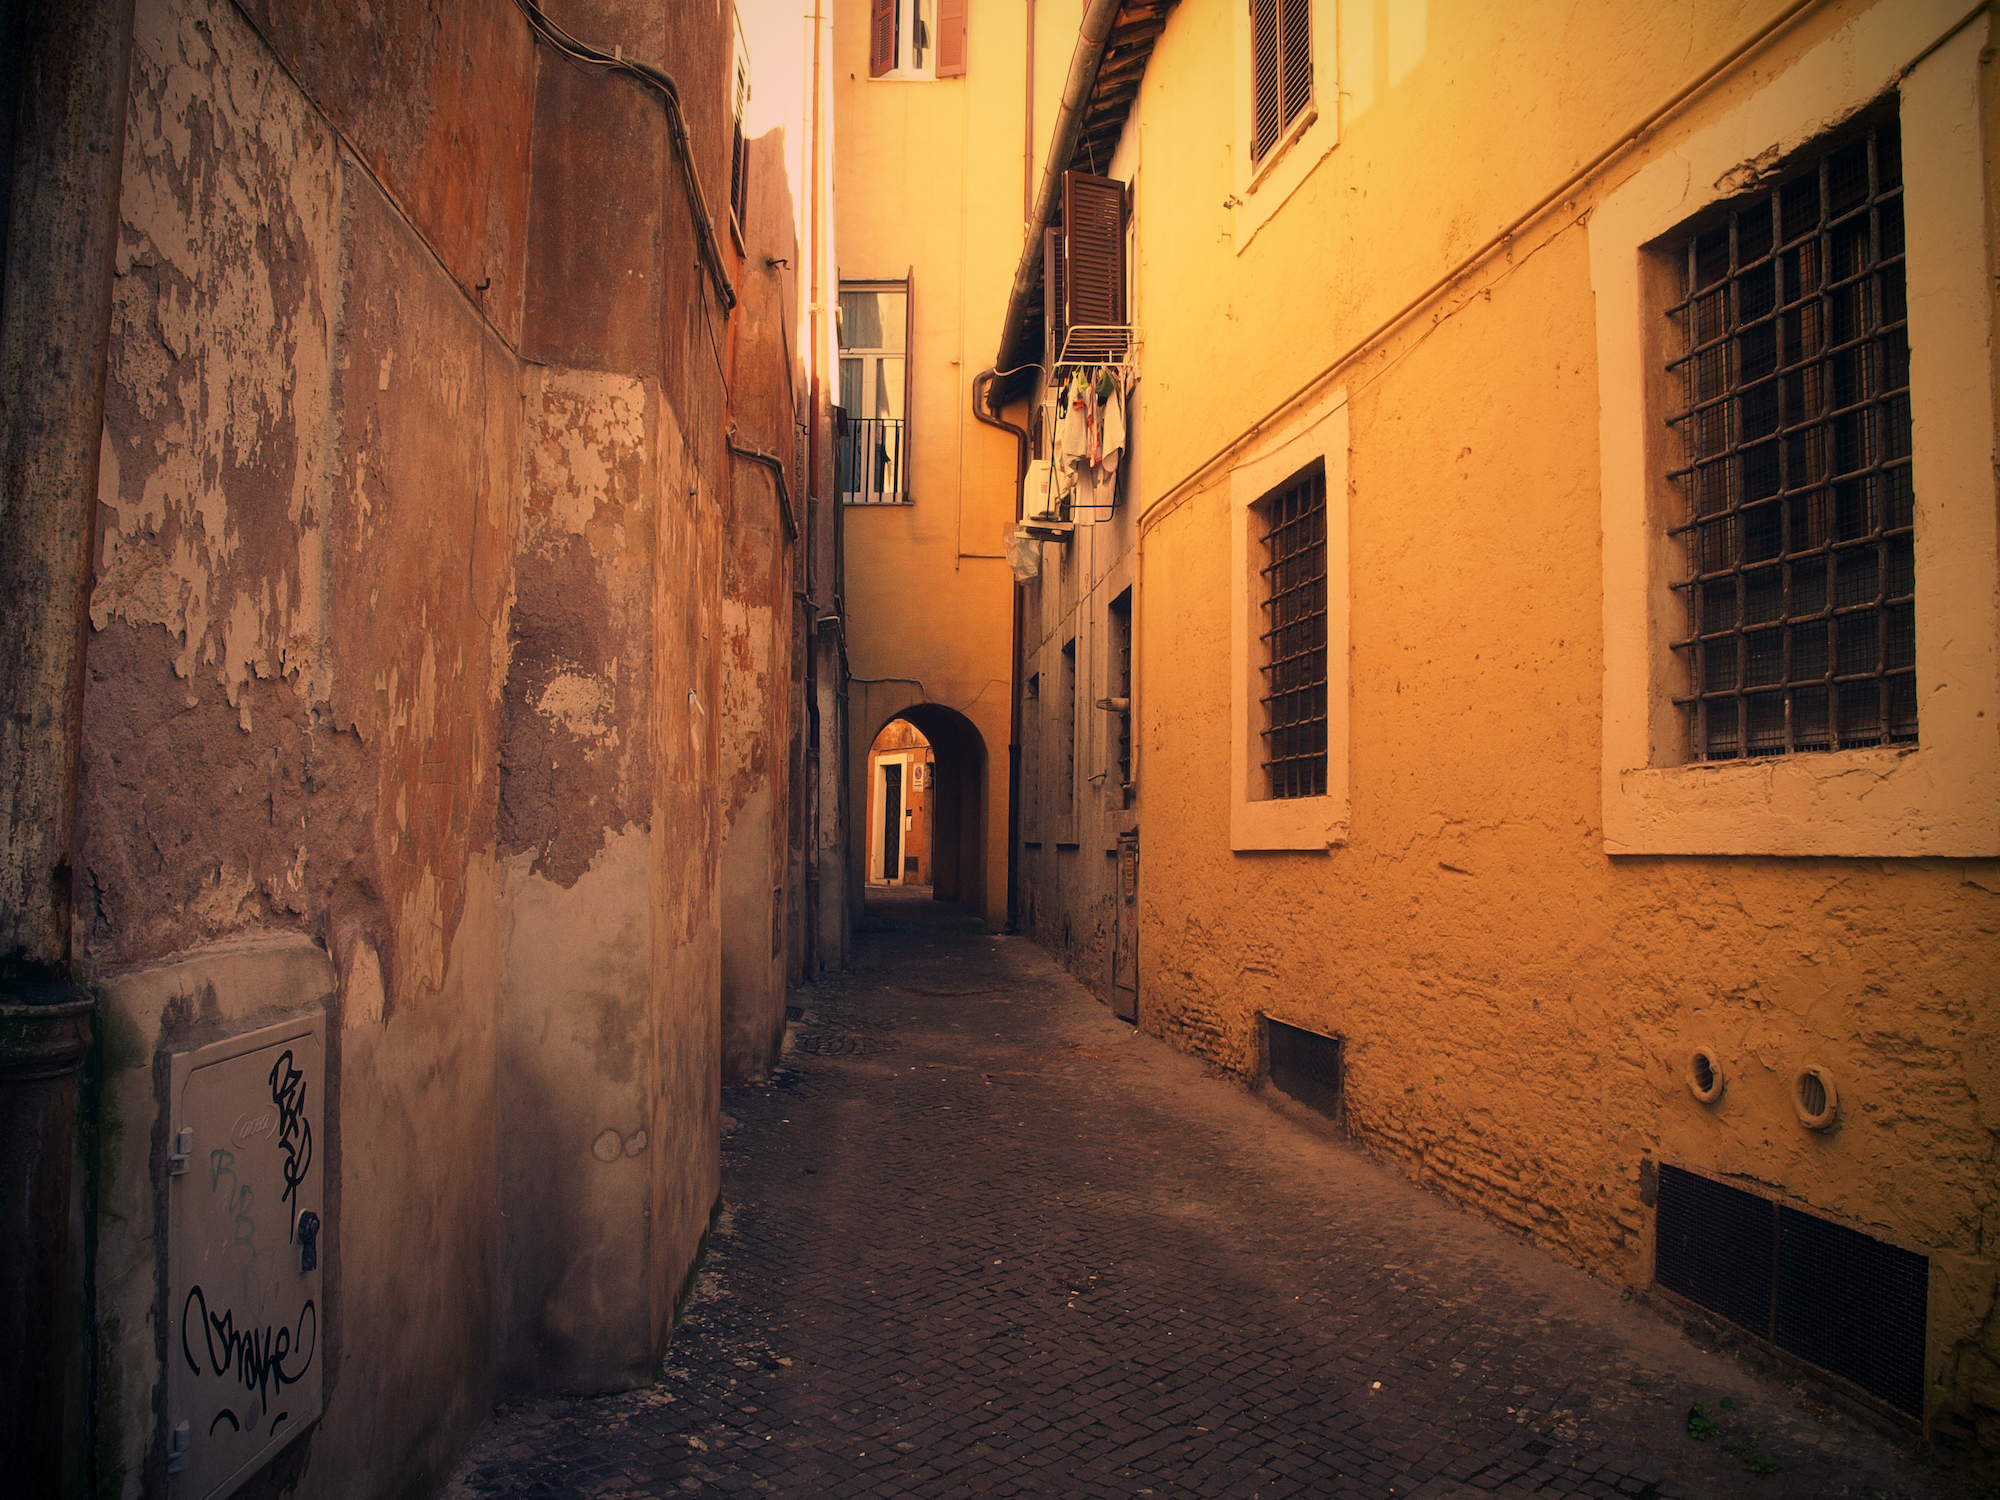 Alley 02  / Part of 'Trip To Italy' series by Geena Matuson @geenamatuson, 2011.